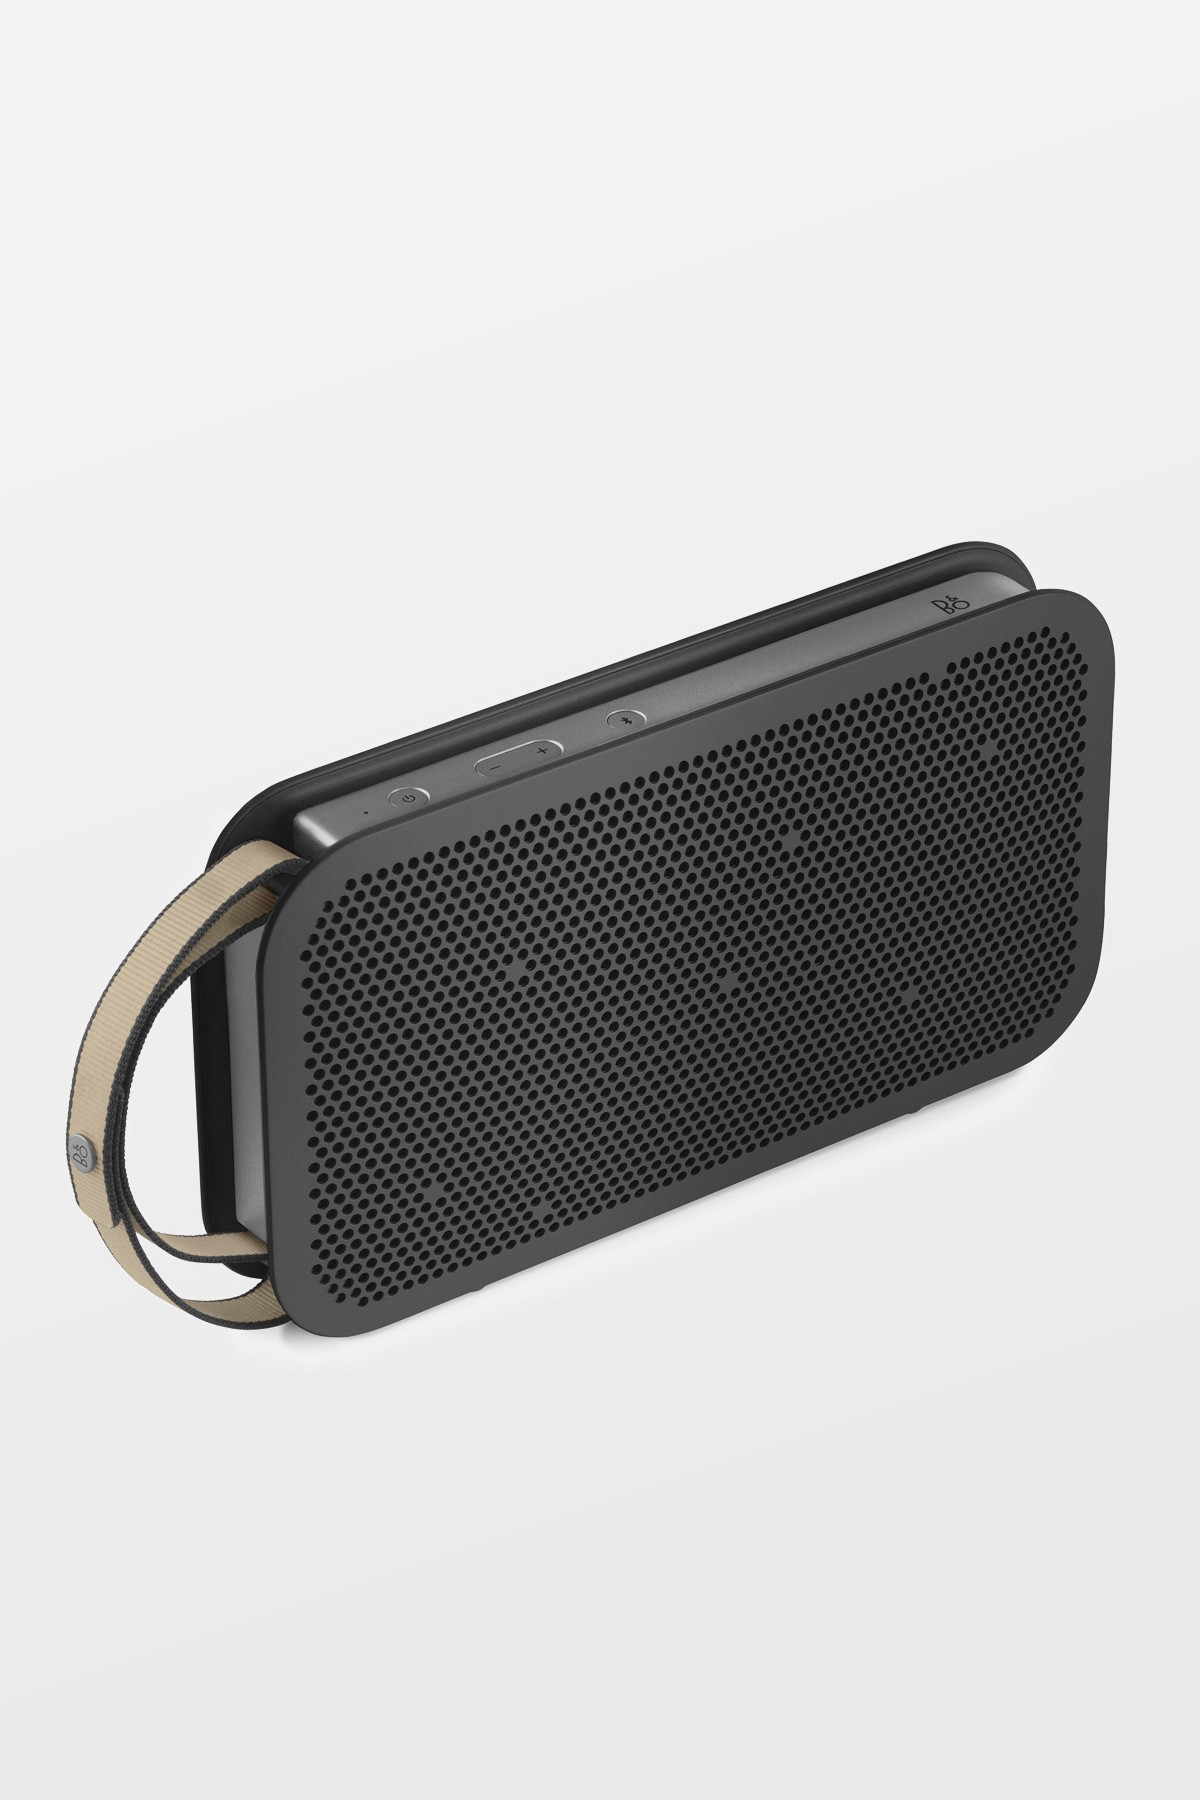 B&O BeoPlay A2 Bluetooth Speaker  - Black